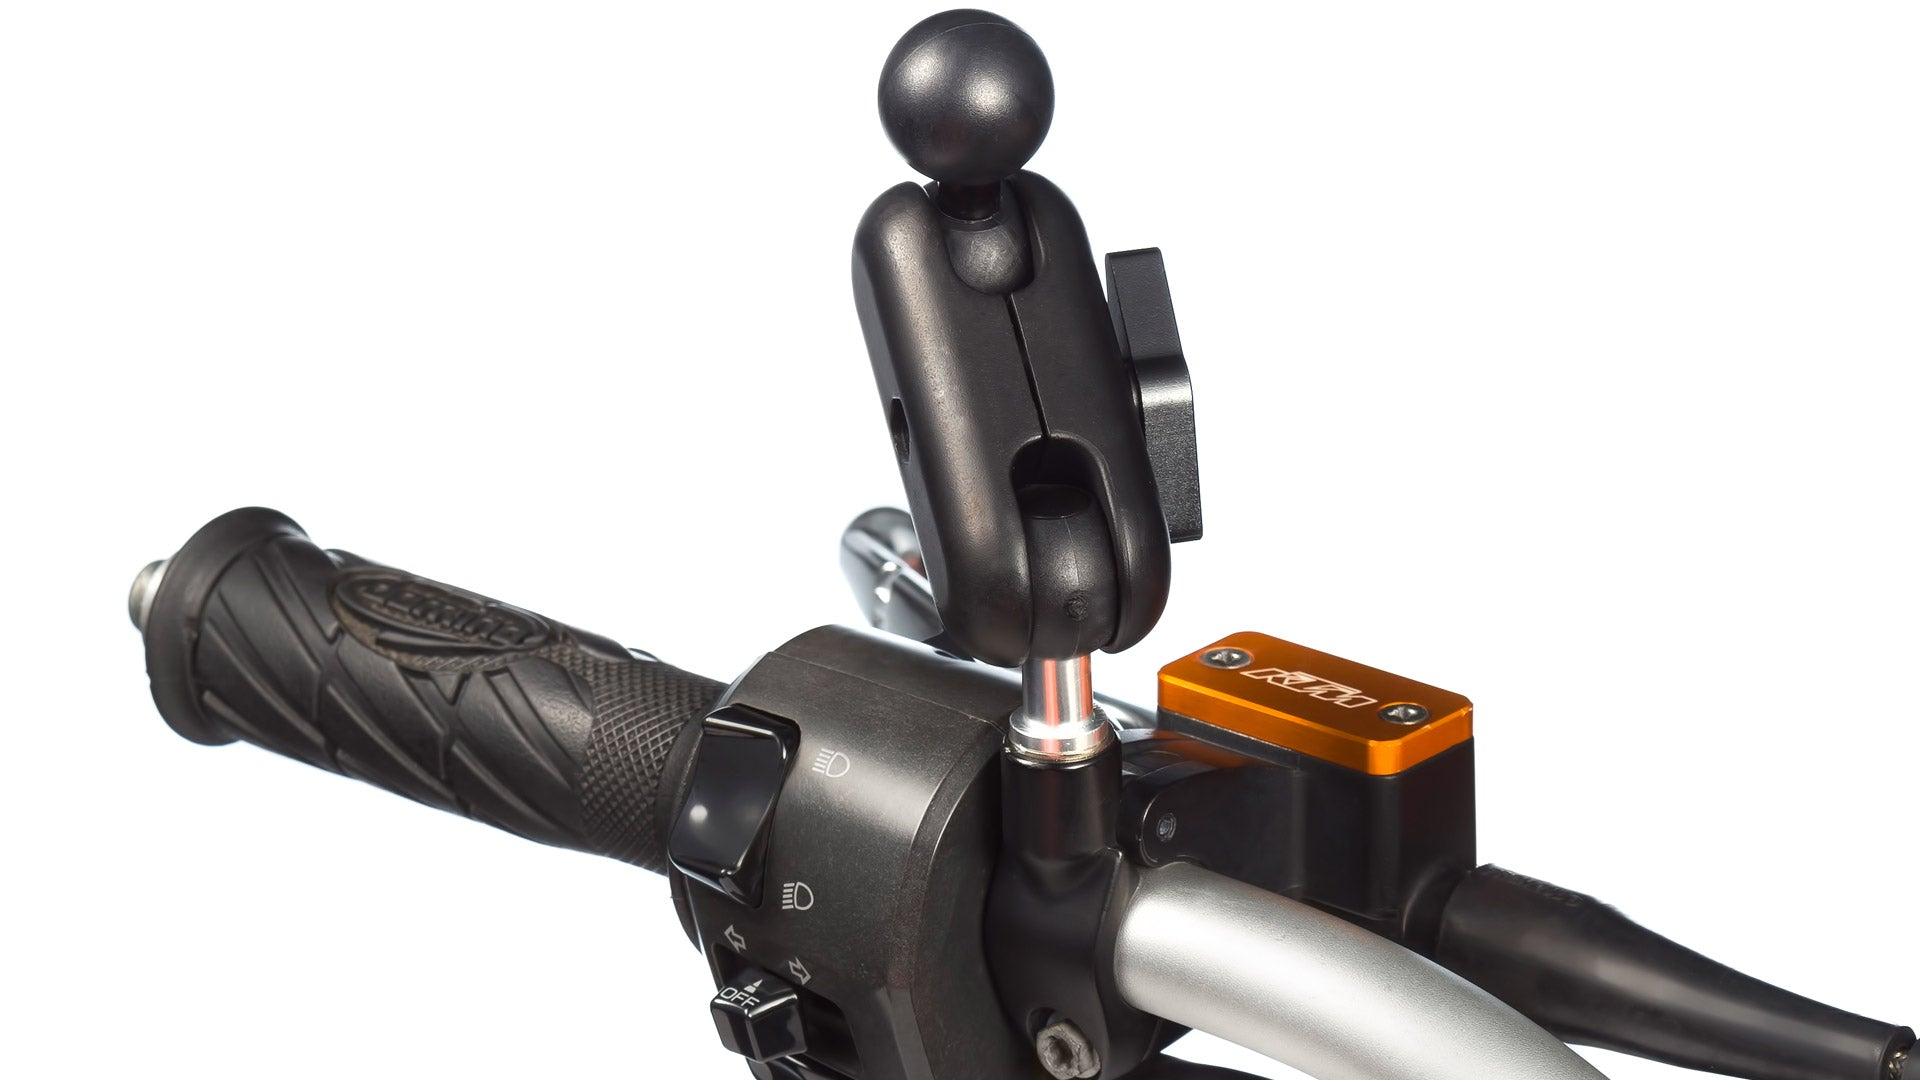 Motorcycle Mirror Mount with Extender Connected